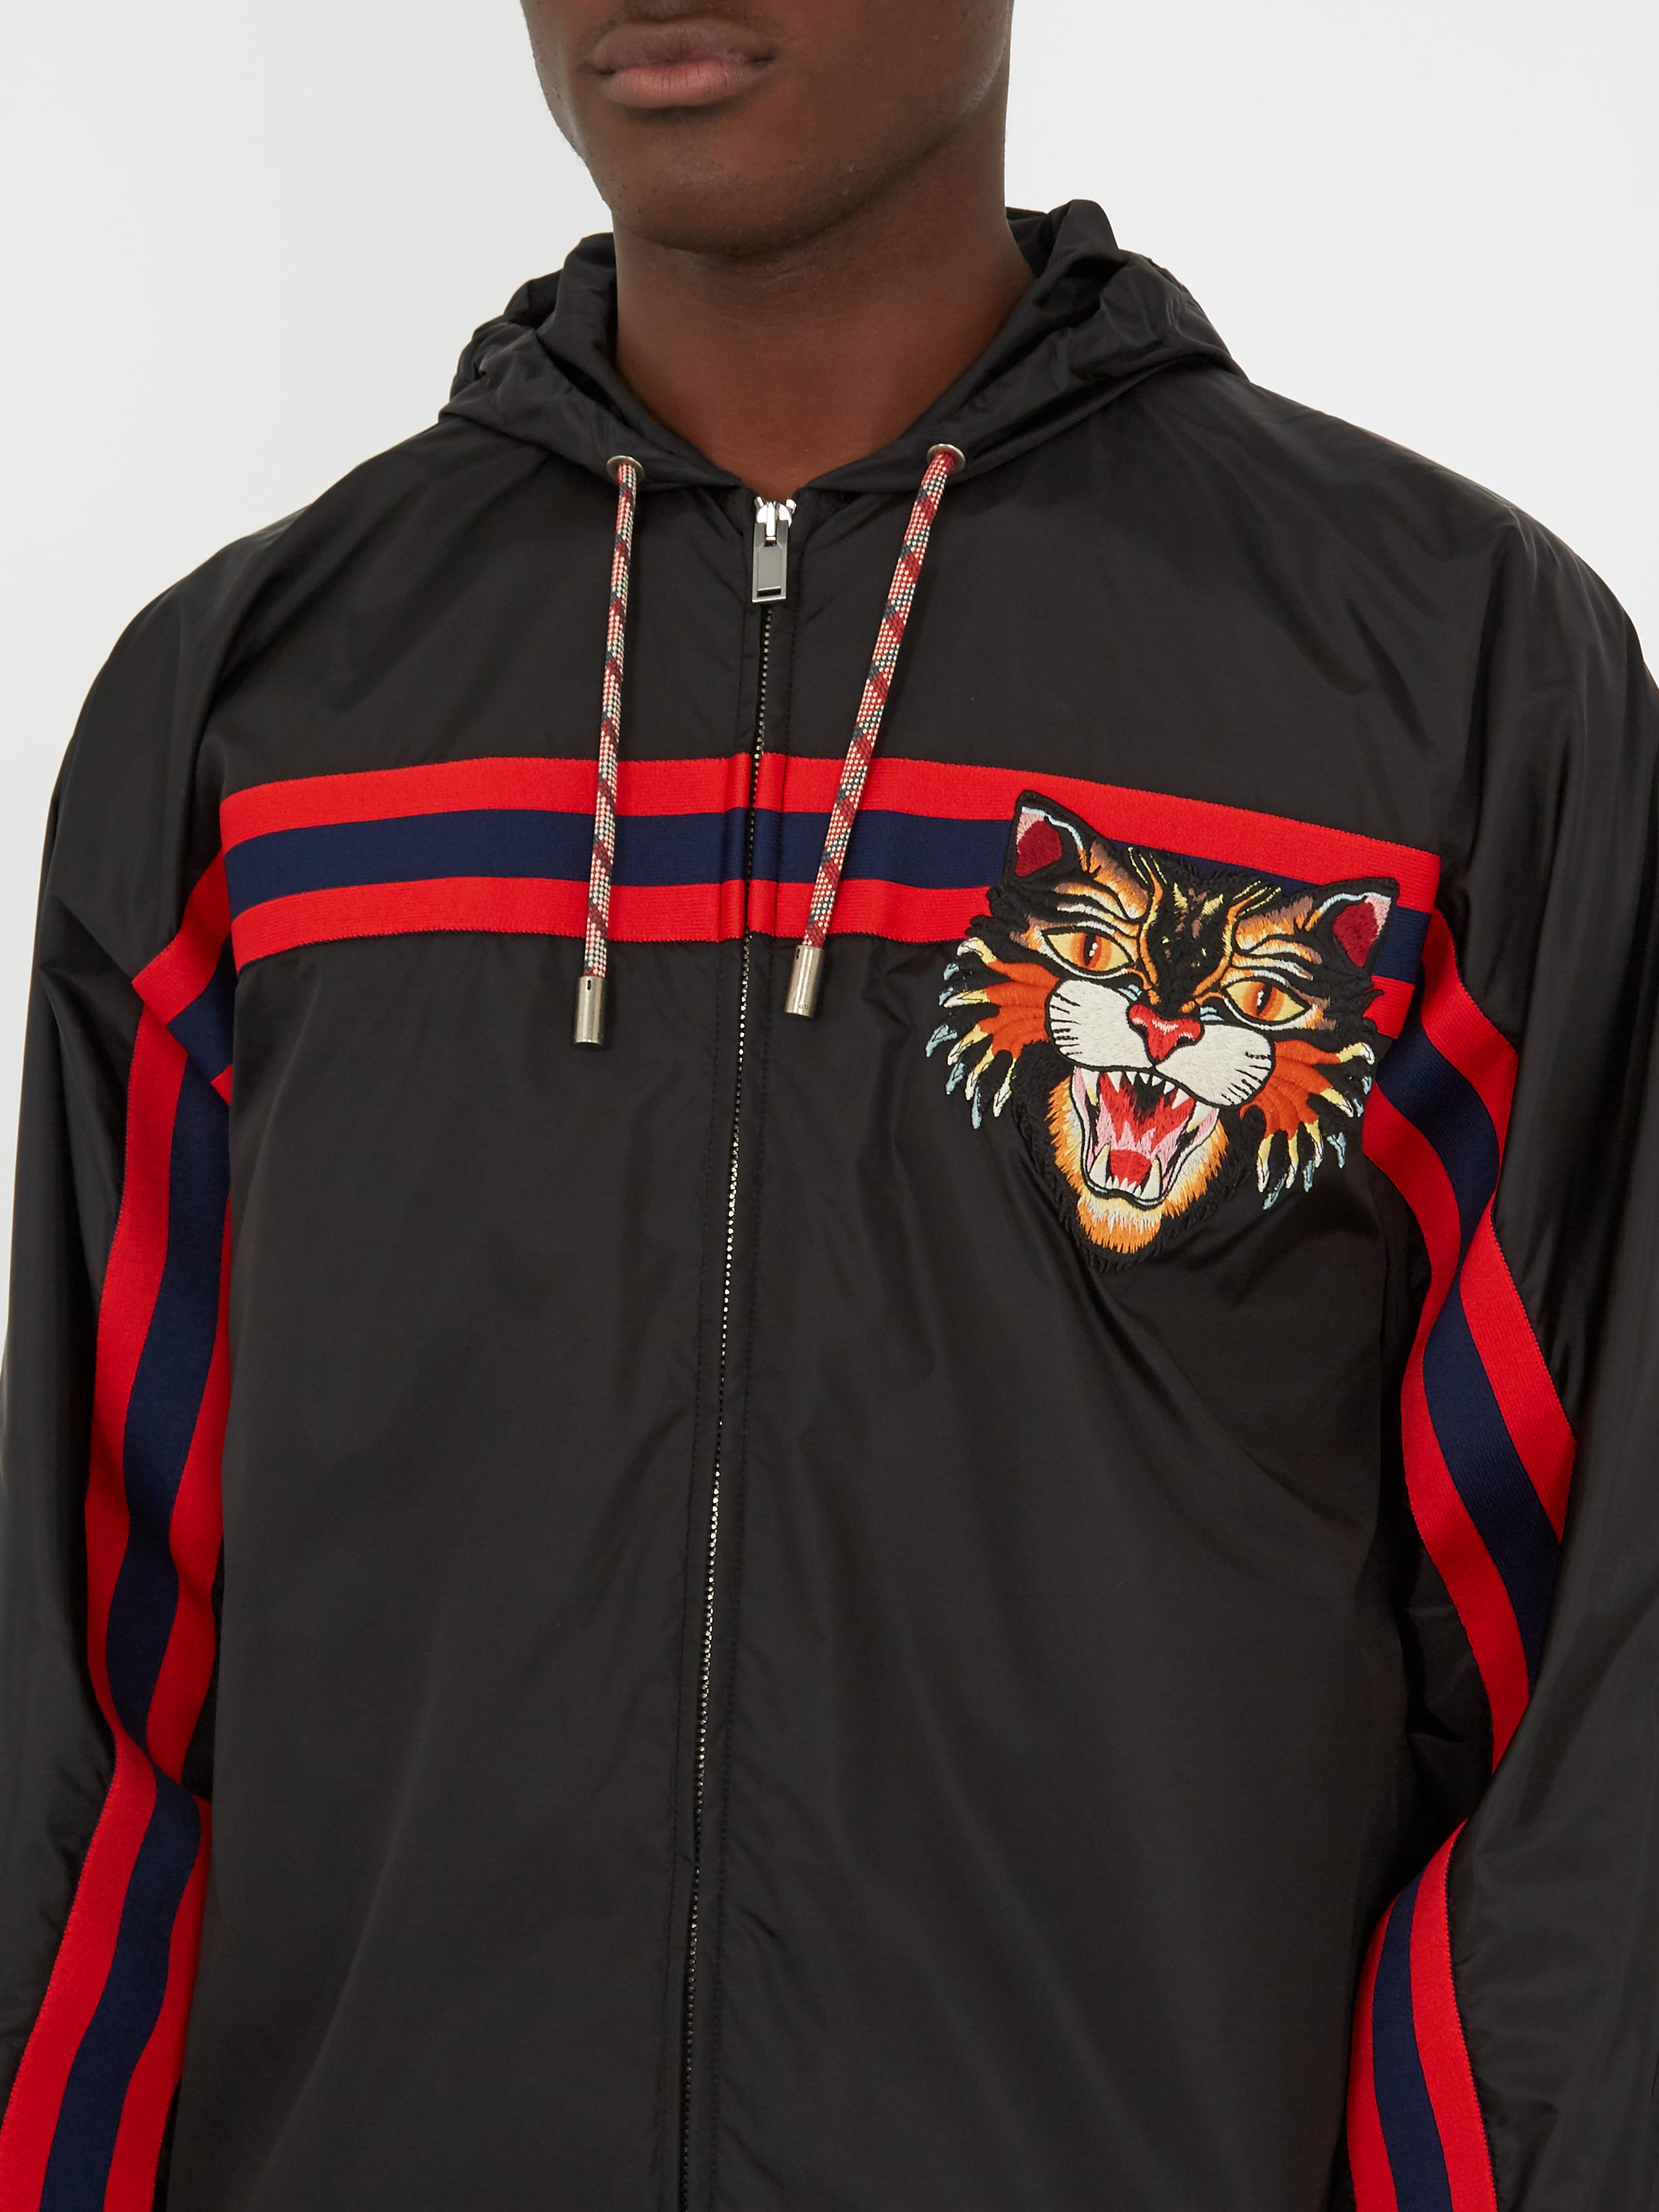 6daac6d9e6a Lyst - Gucci Cat-embroidered Nylon Jacket in Black for Men